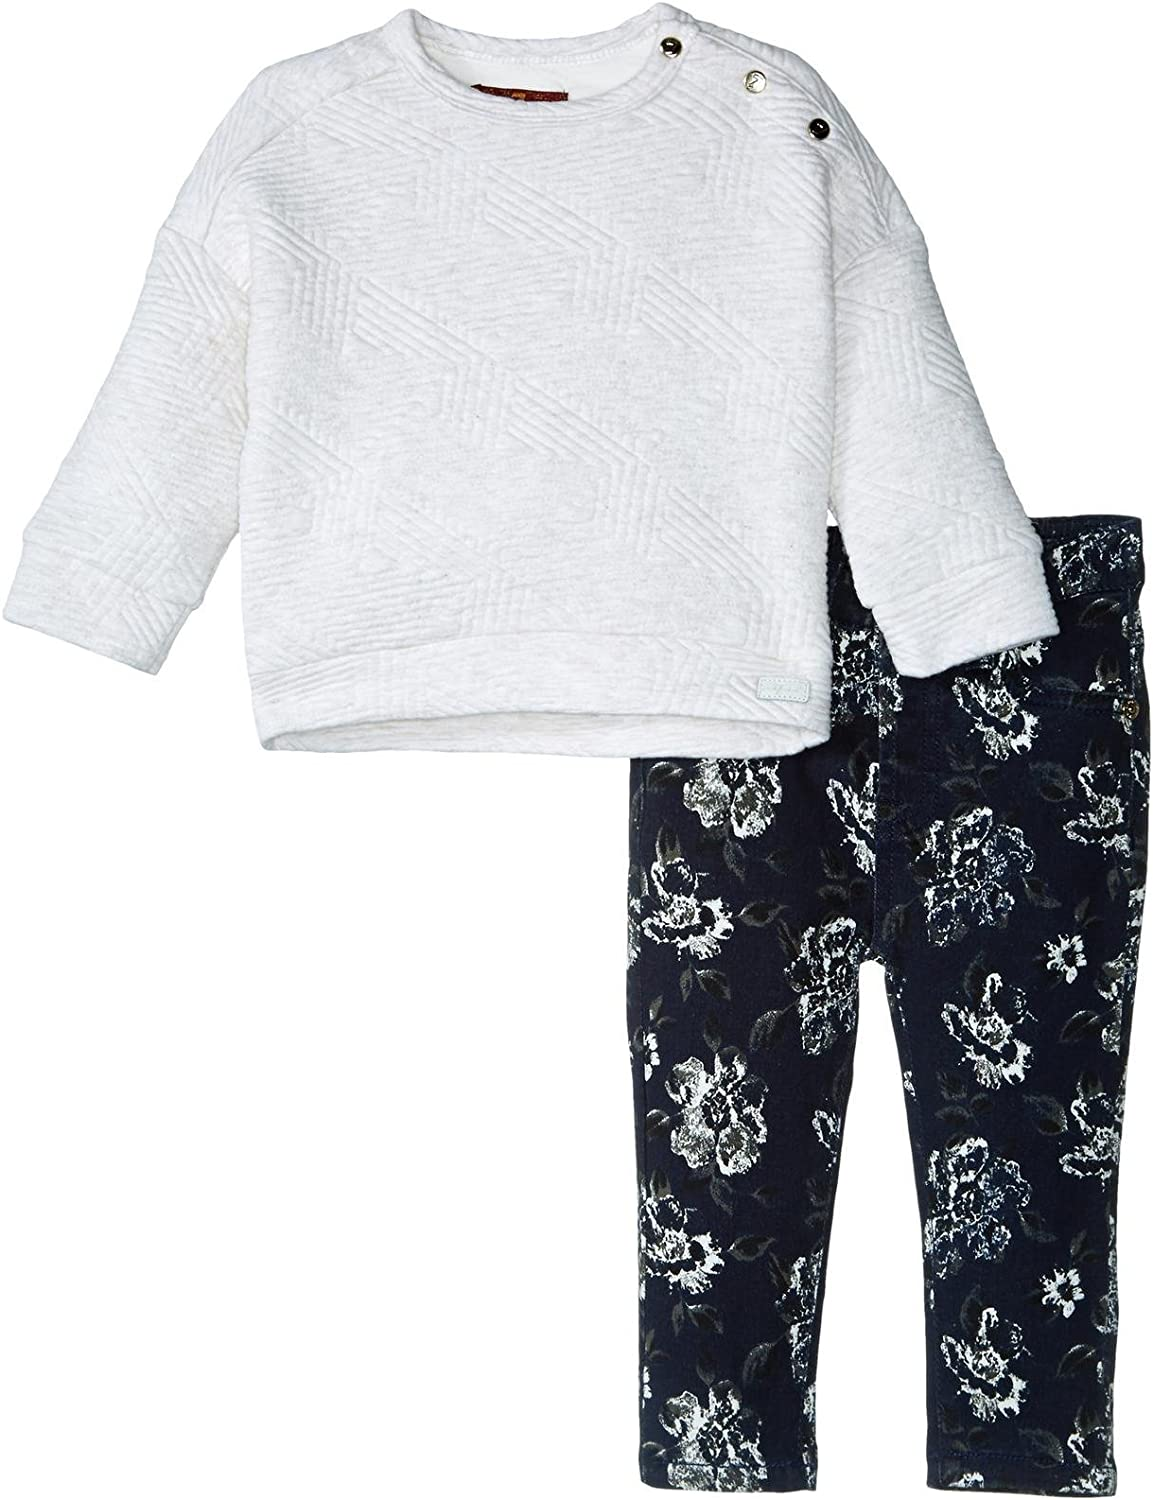 7 Indianapolis Mall For All Mankind Girls' The Skinny Regular dealer Twill 5-Pocket Stretch Jeans